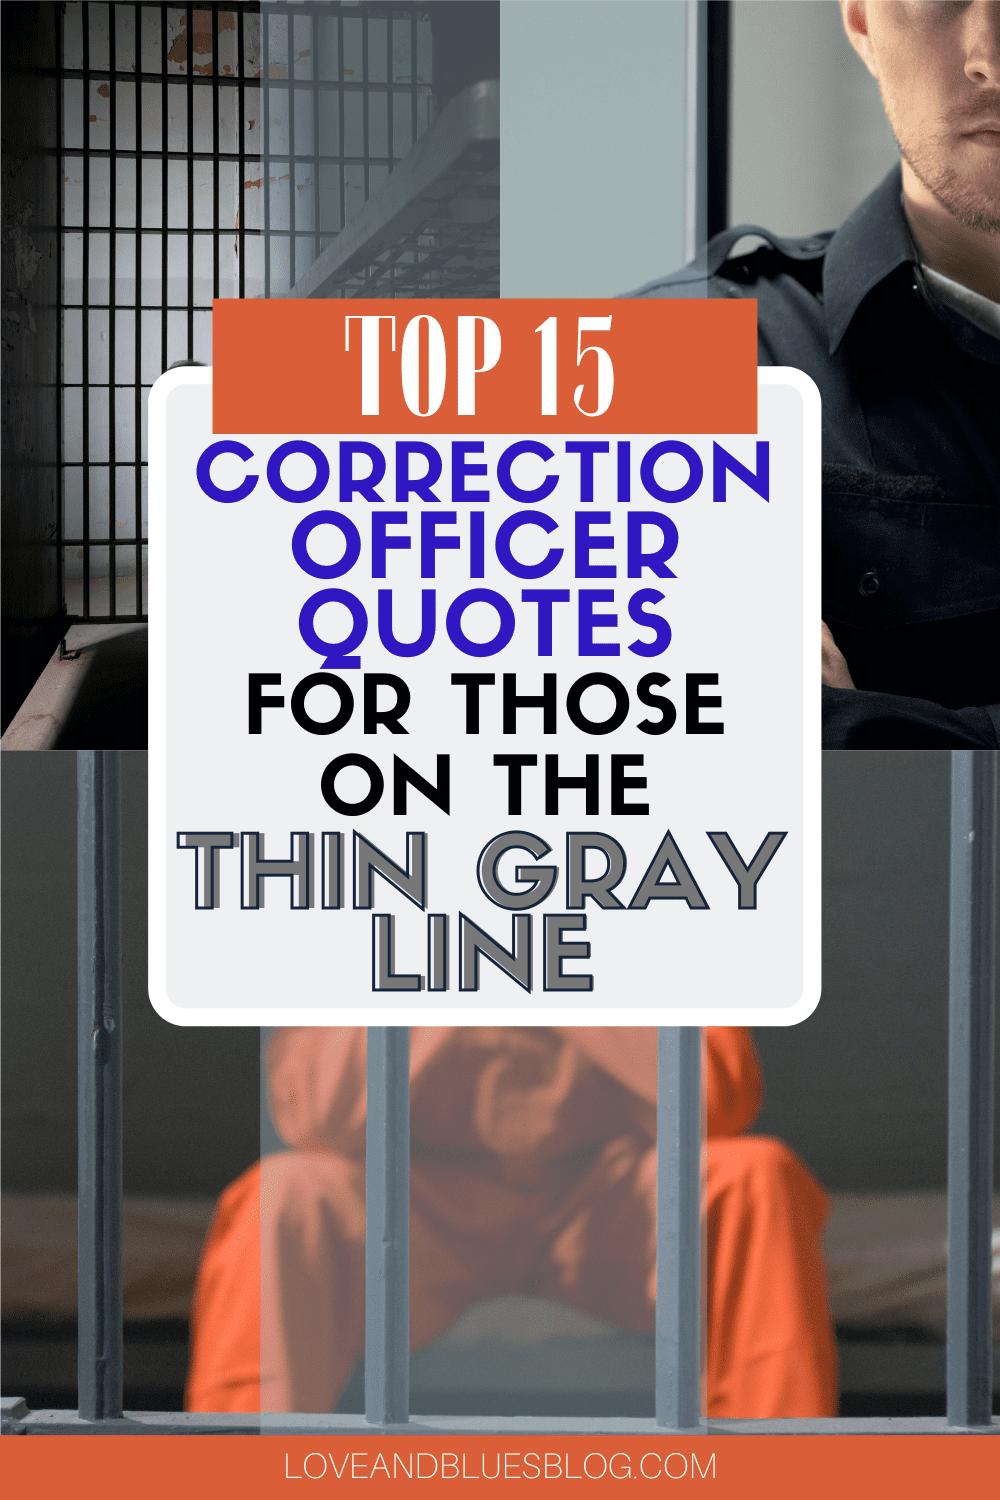 Great correction officer quotes! You don't find a lot of thin gray line support so this was awesome.